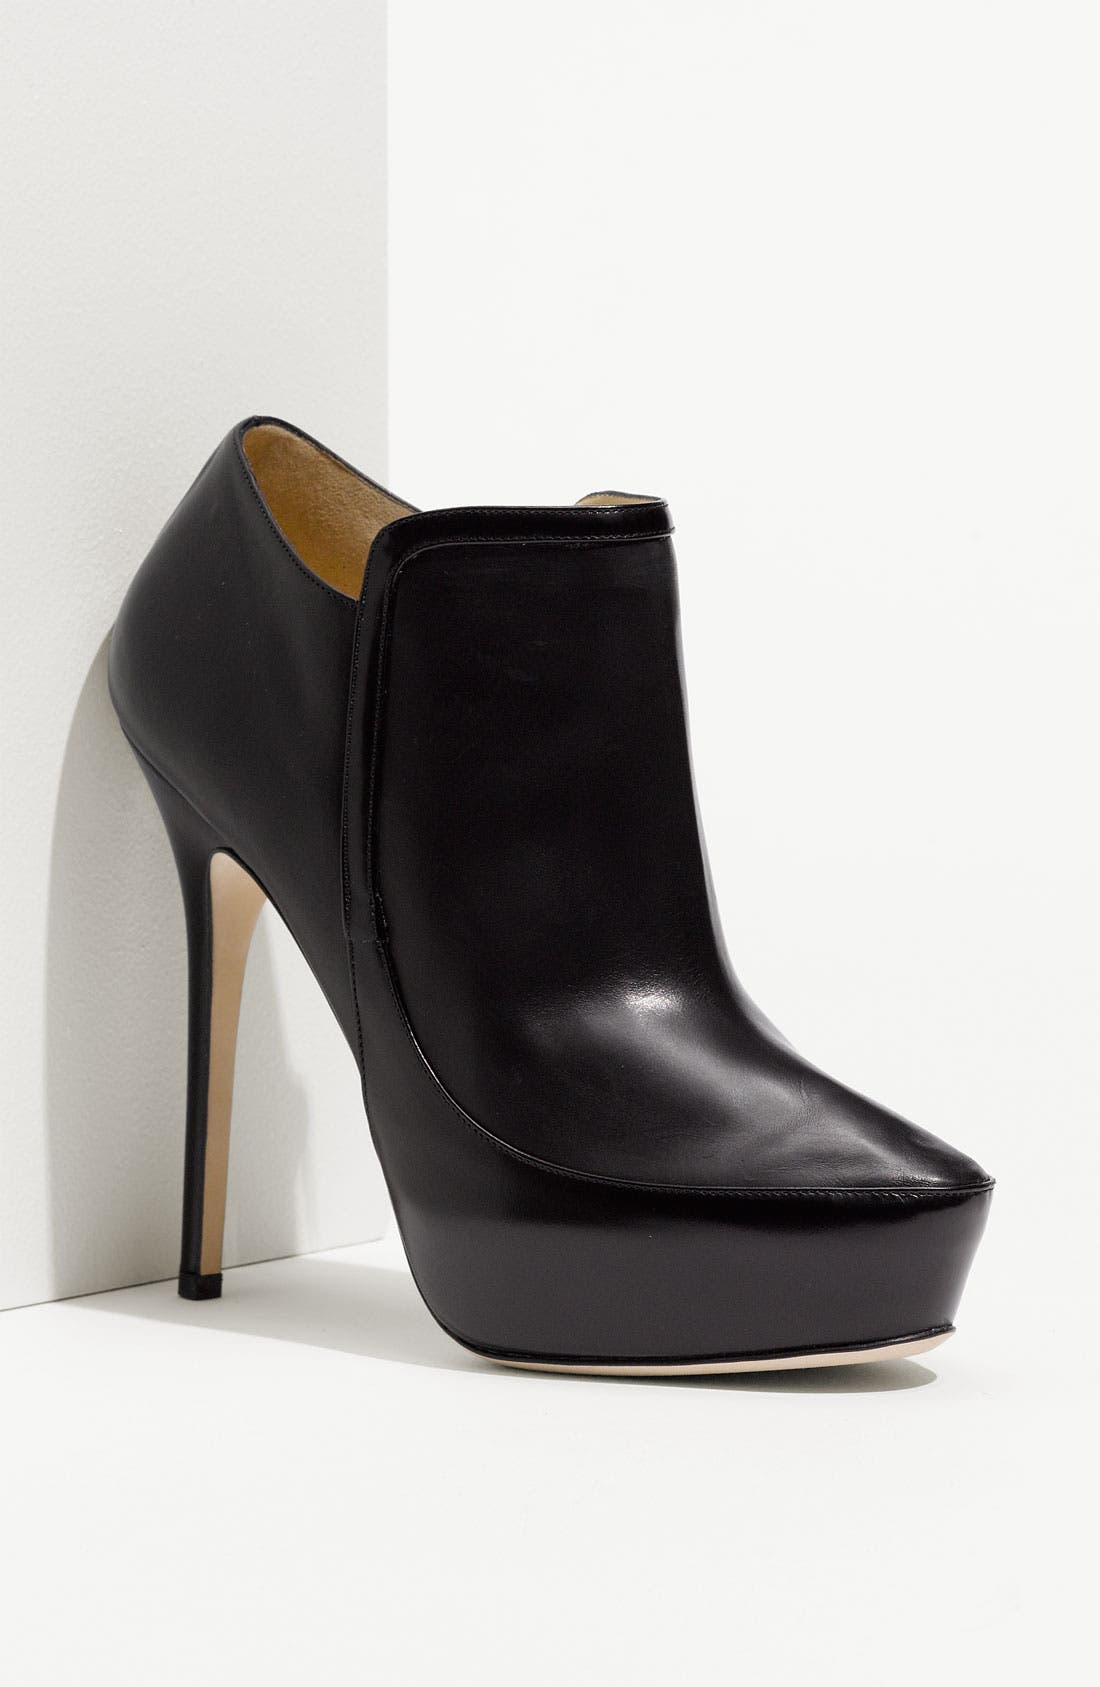 Main Image - Jimmy Choo 'Decoy' Platform Bootie